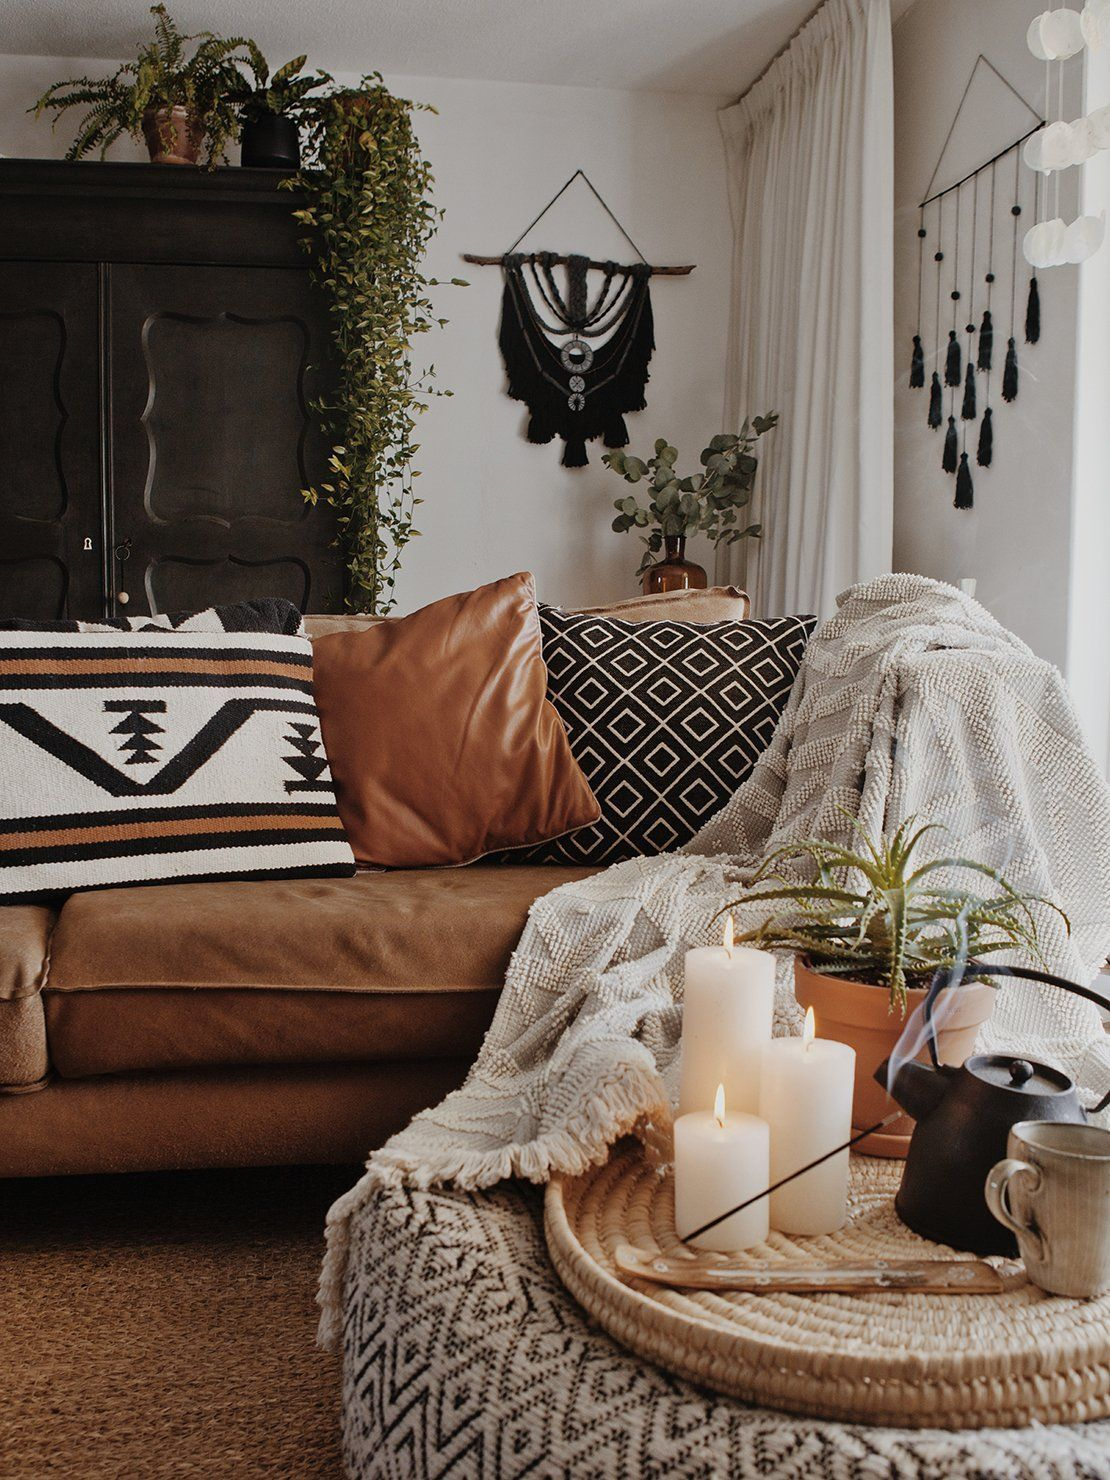 light colors uncluttered lots of pillows and blankets